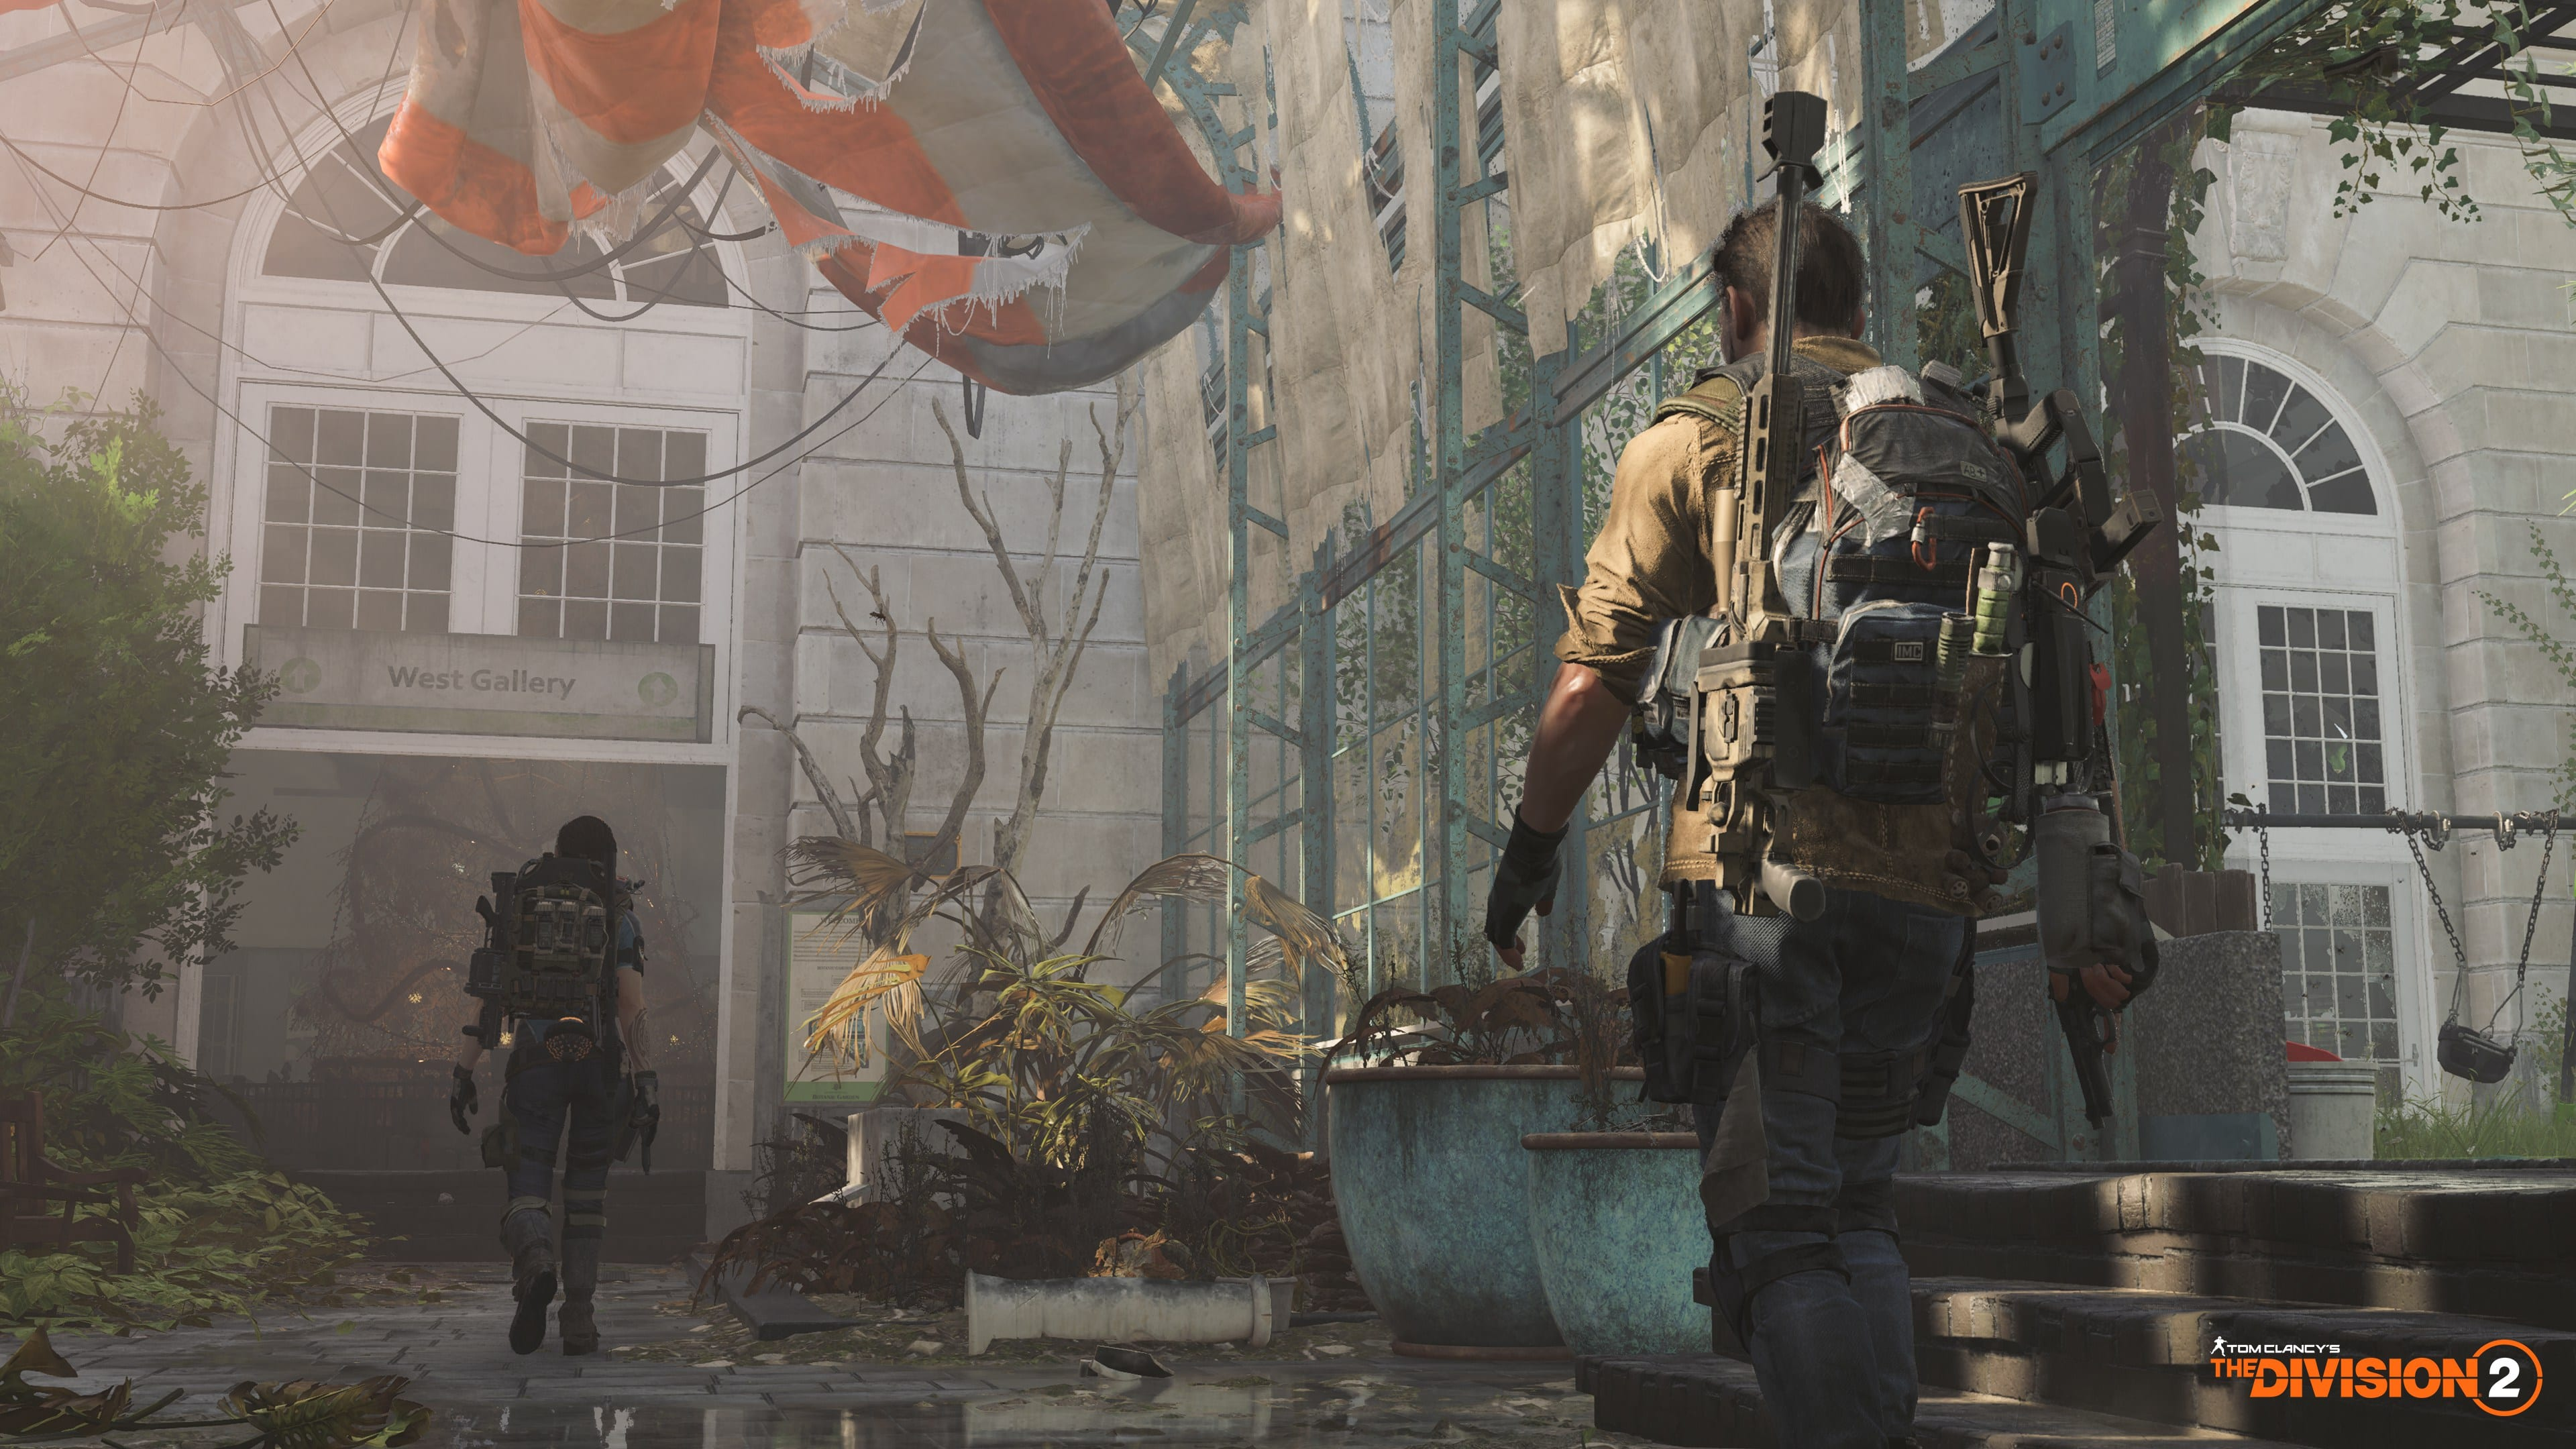 The Division 2 System Requirements, update, Updates